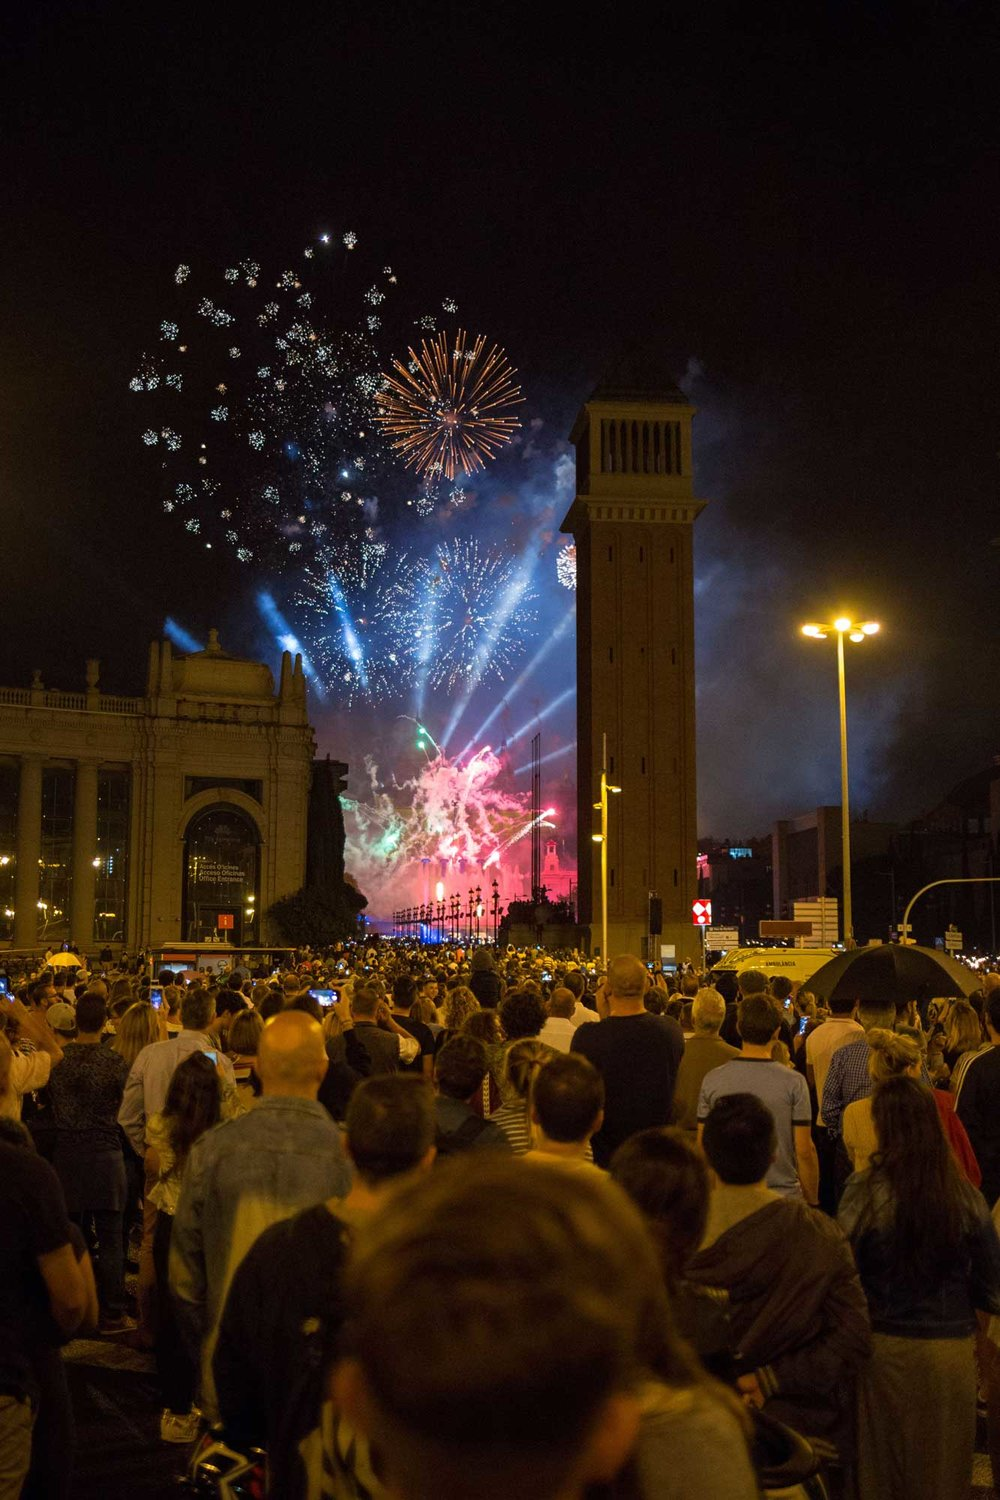 2016 — Fireworks at the Plaça Espanya during the Festival La Mercè